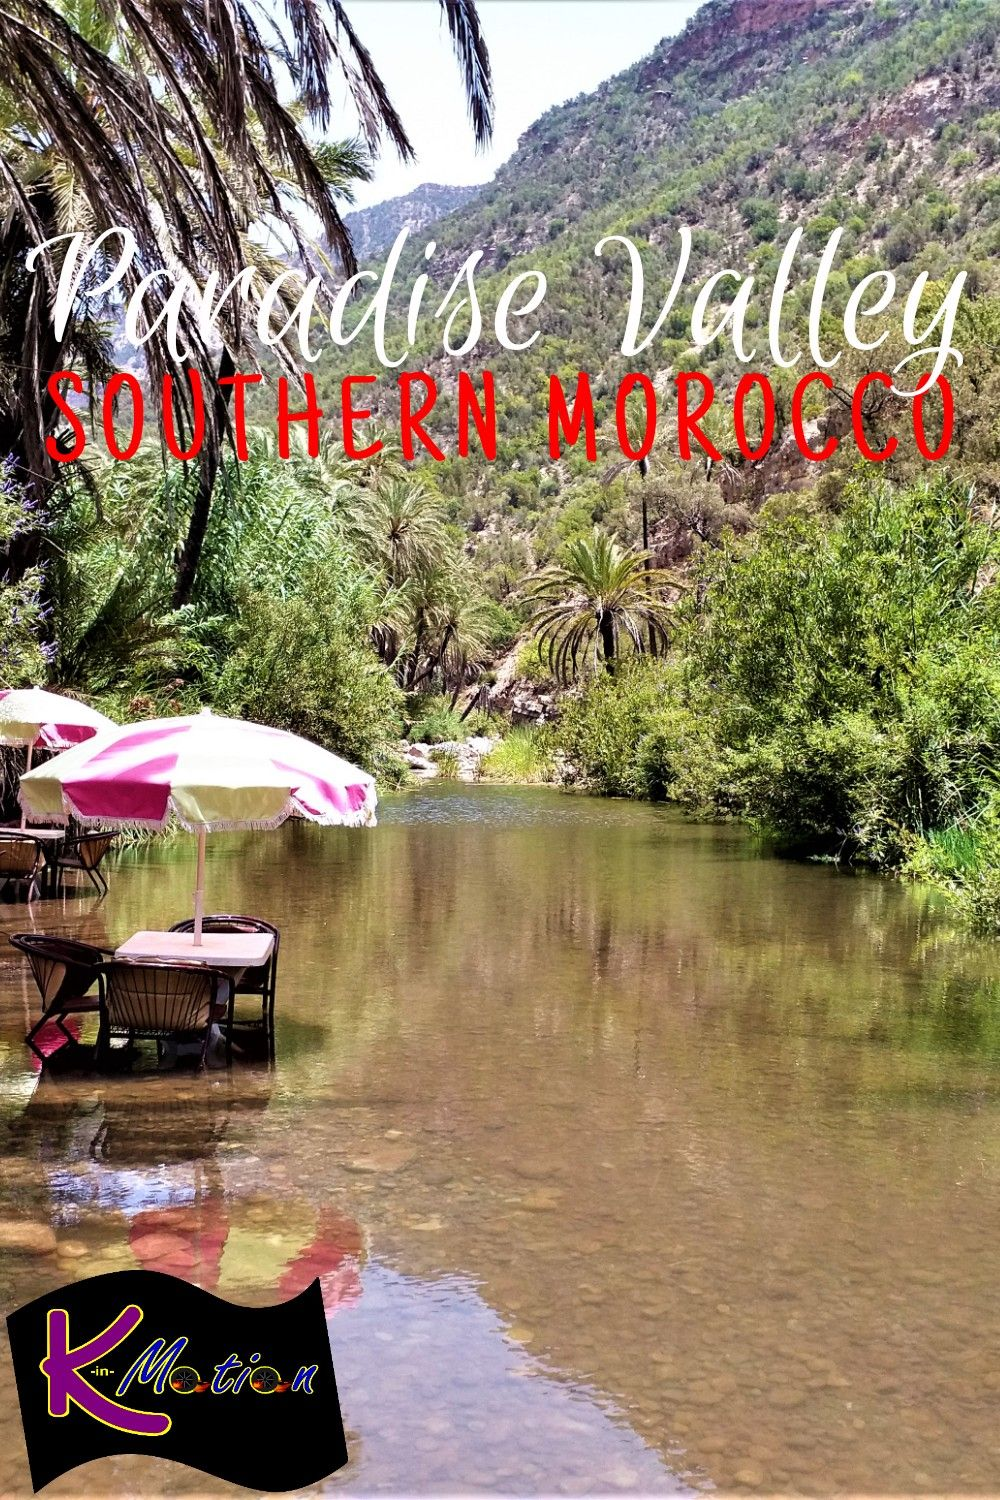 Visit an oasis in Southern Morocco! #africa #morocco #oasis #paradisevalley #budgettravel #budget #travel